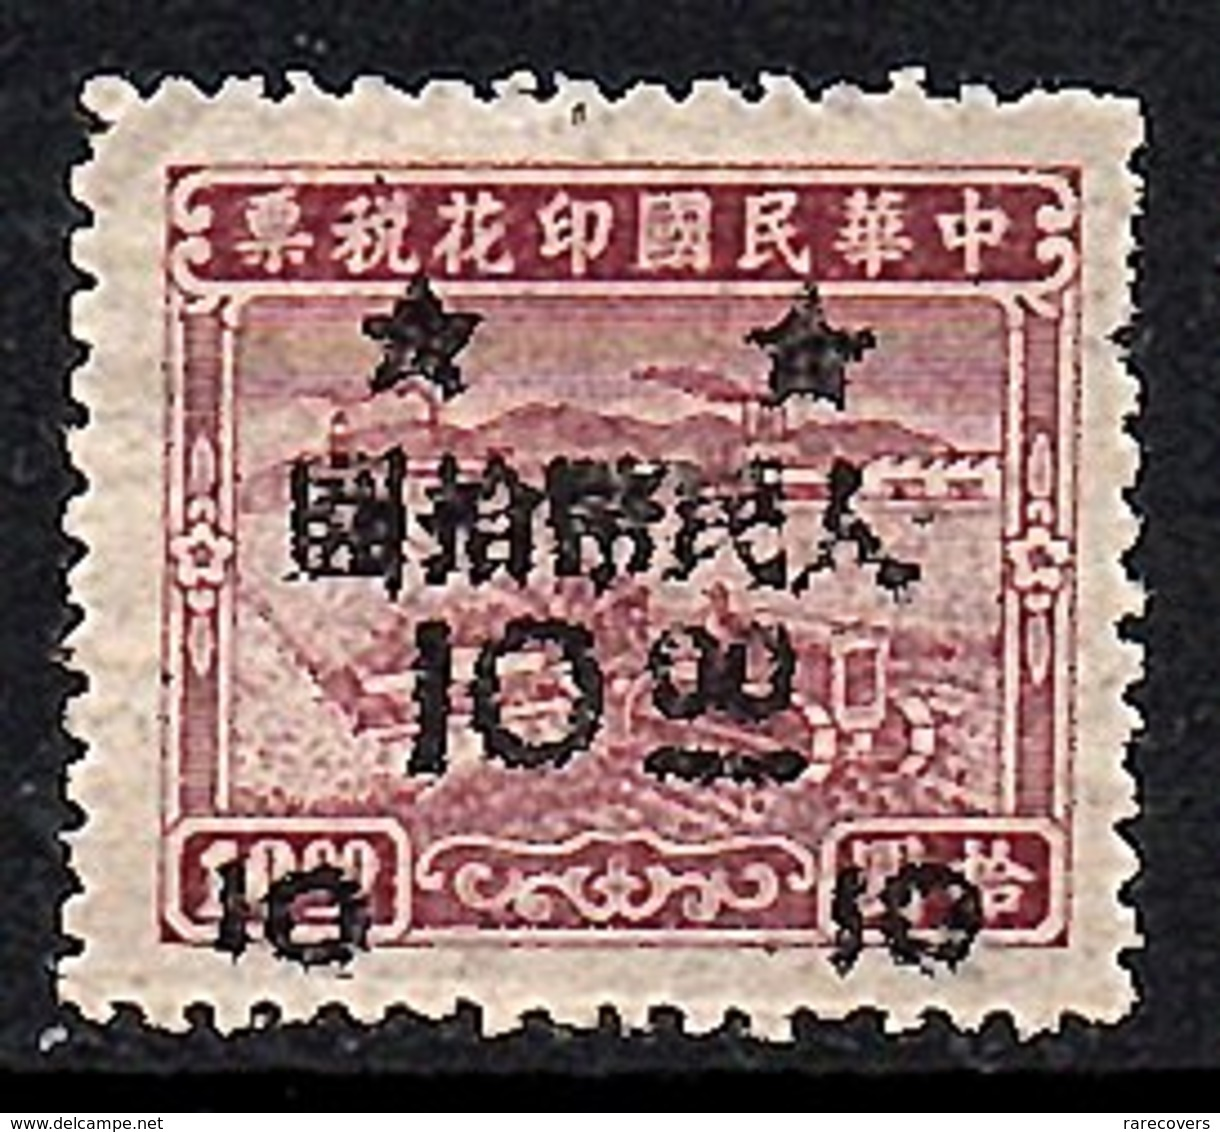 UNLISTED $10 Probably East China, Unlisted In Paau, Wettering And Padget Catalogues MH (209) - Western-China 1949-50